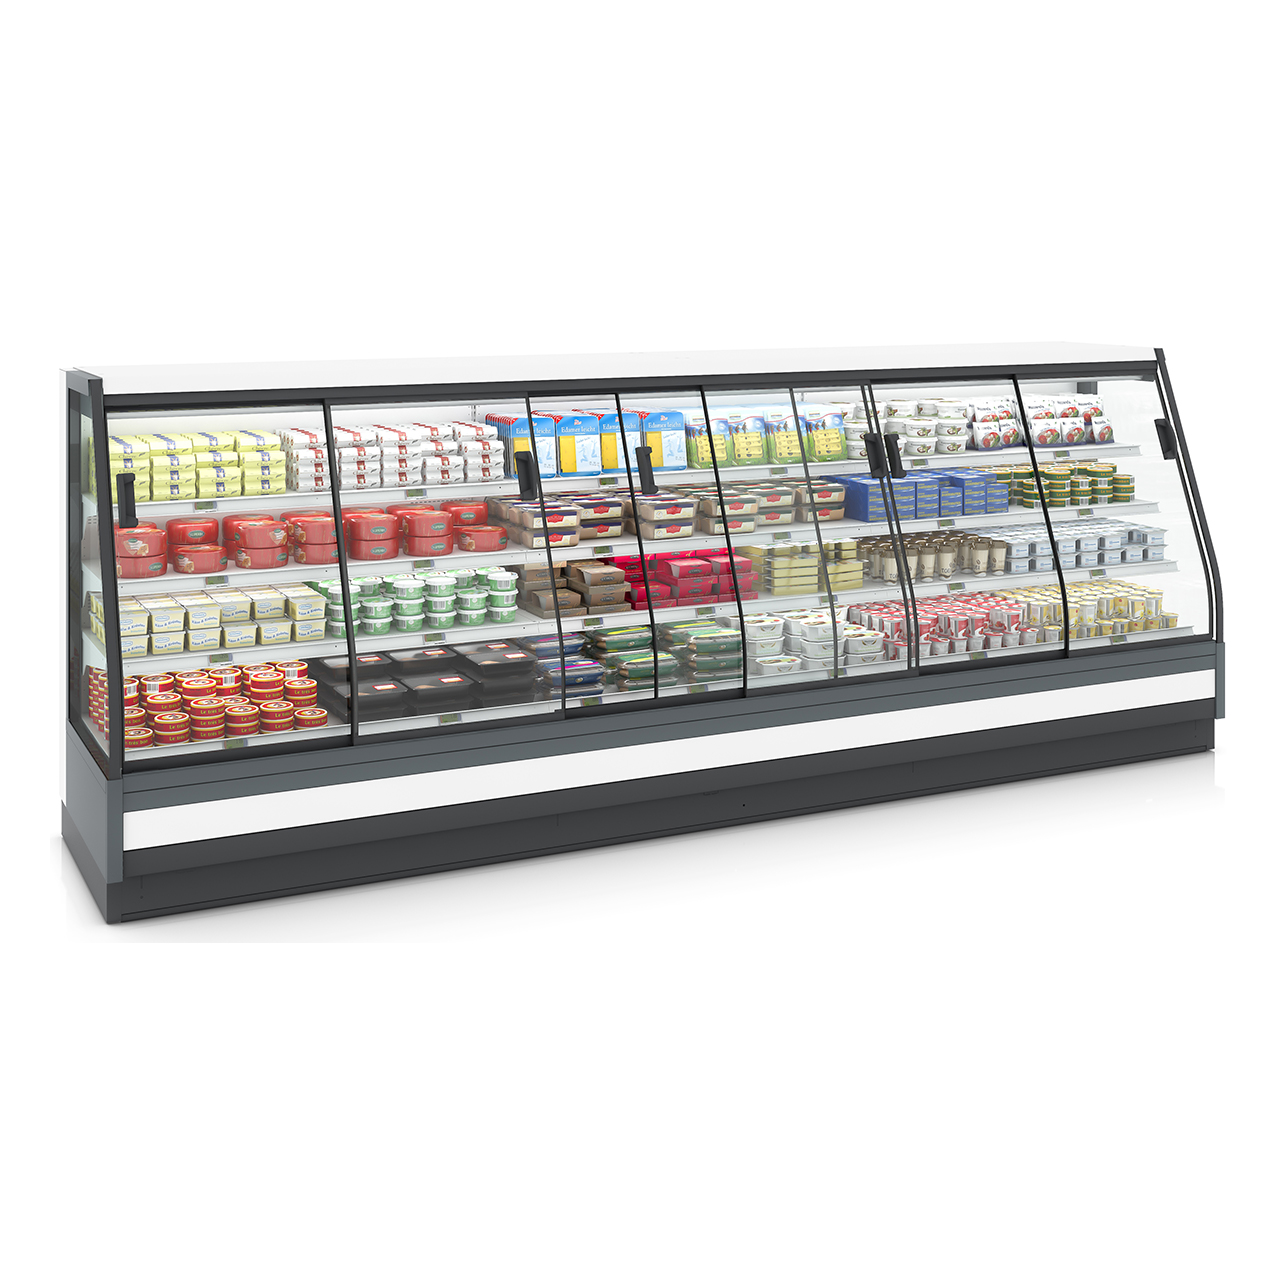 refrigerated-cabinet-e6-morea-gs-D